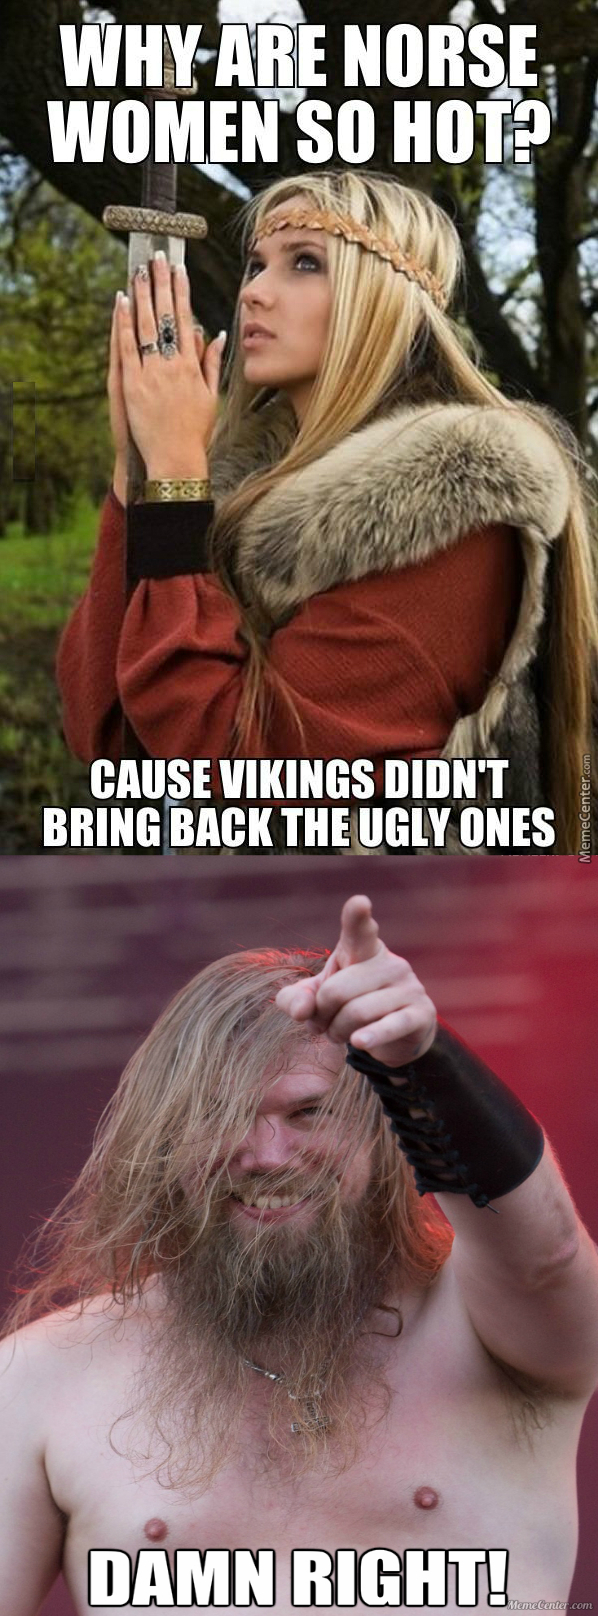 Johan Hegg From Amon Amarth Approves.